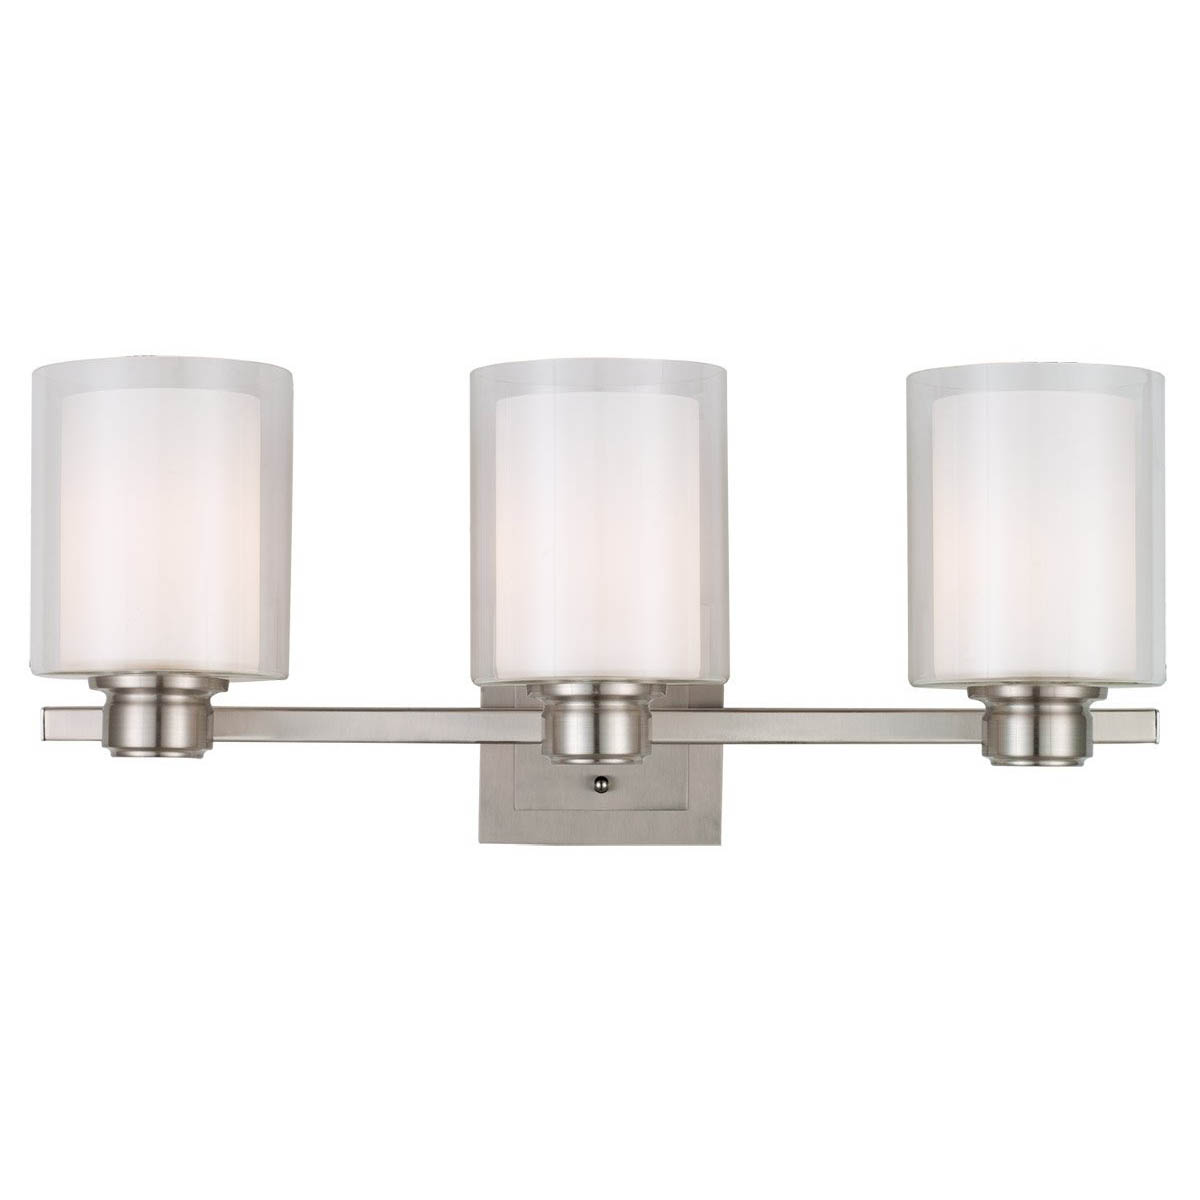 Design House Oslo 3 Light Indoor Wall Mount in Satin Nickel - 556159